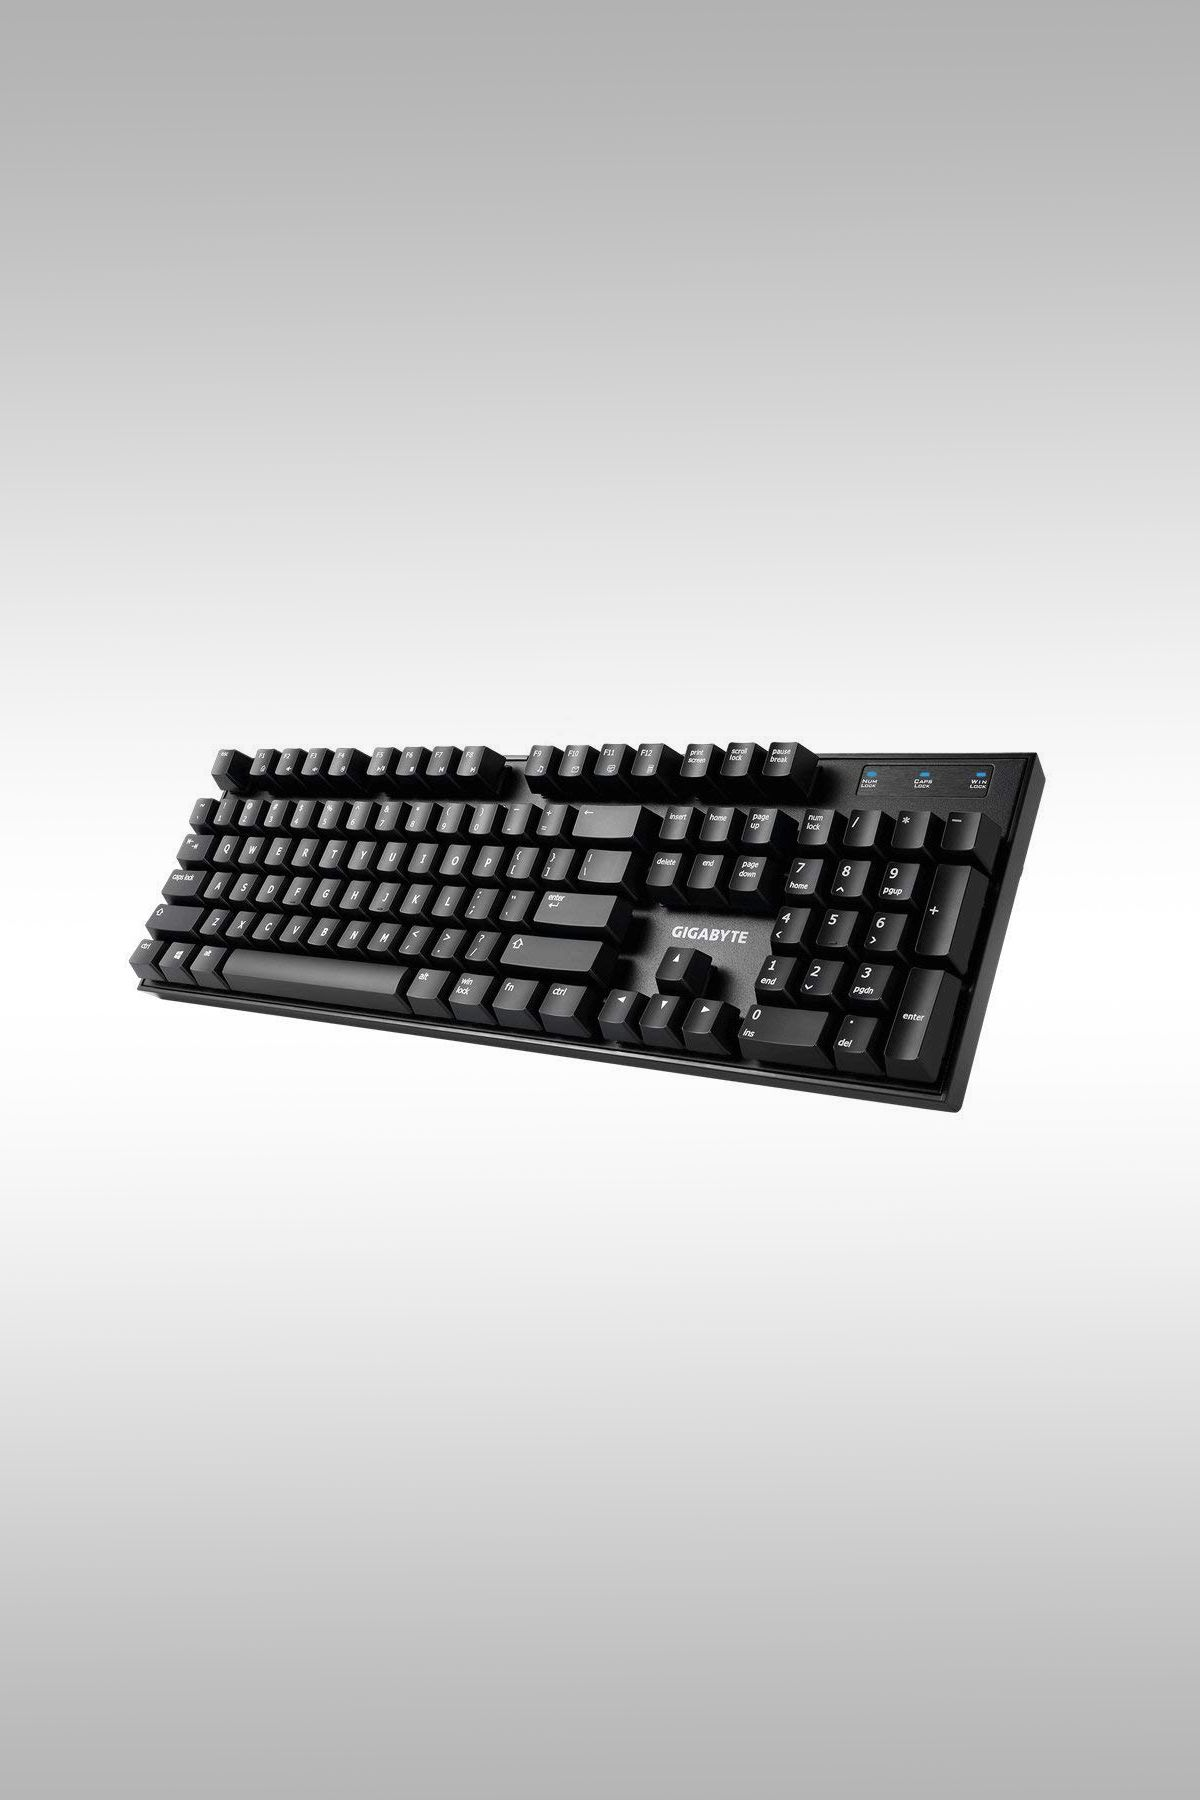 The Best Cheap Gaming Keyboards of 2019 | Gaming | Keyboard